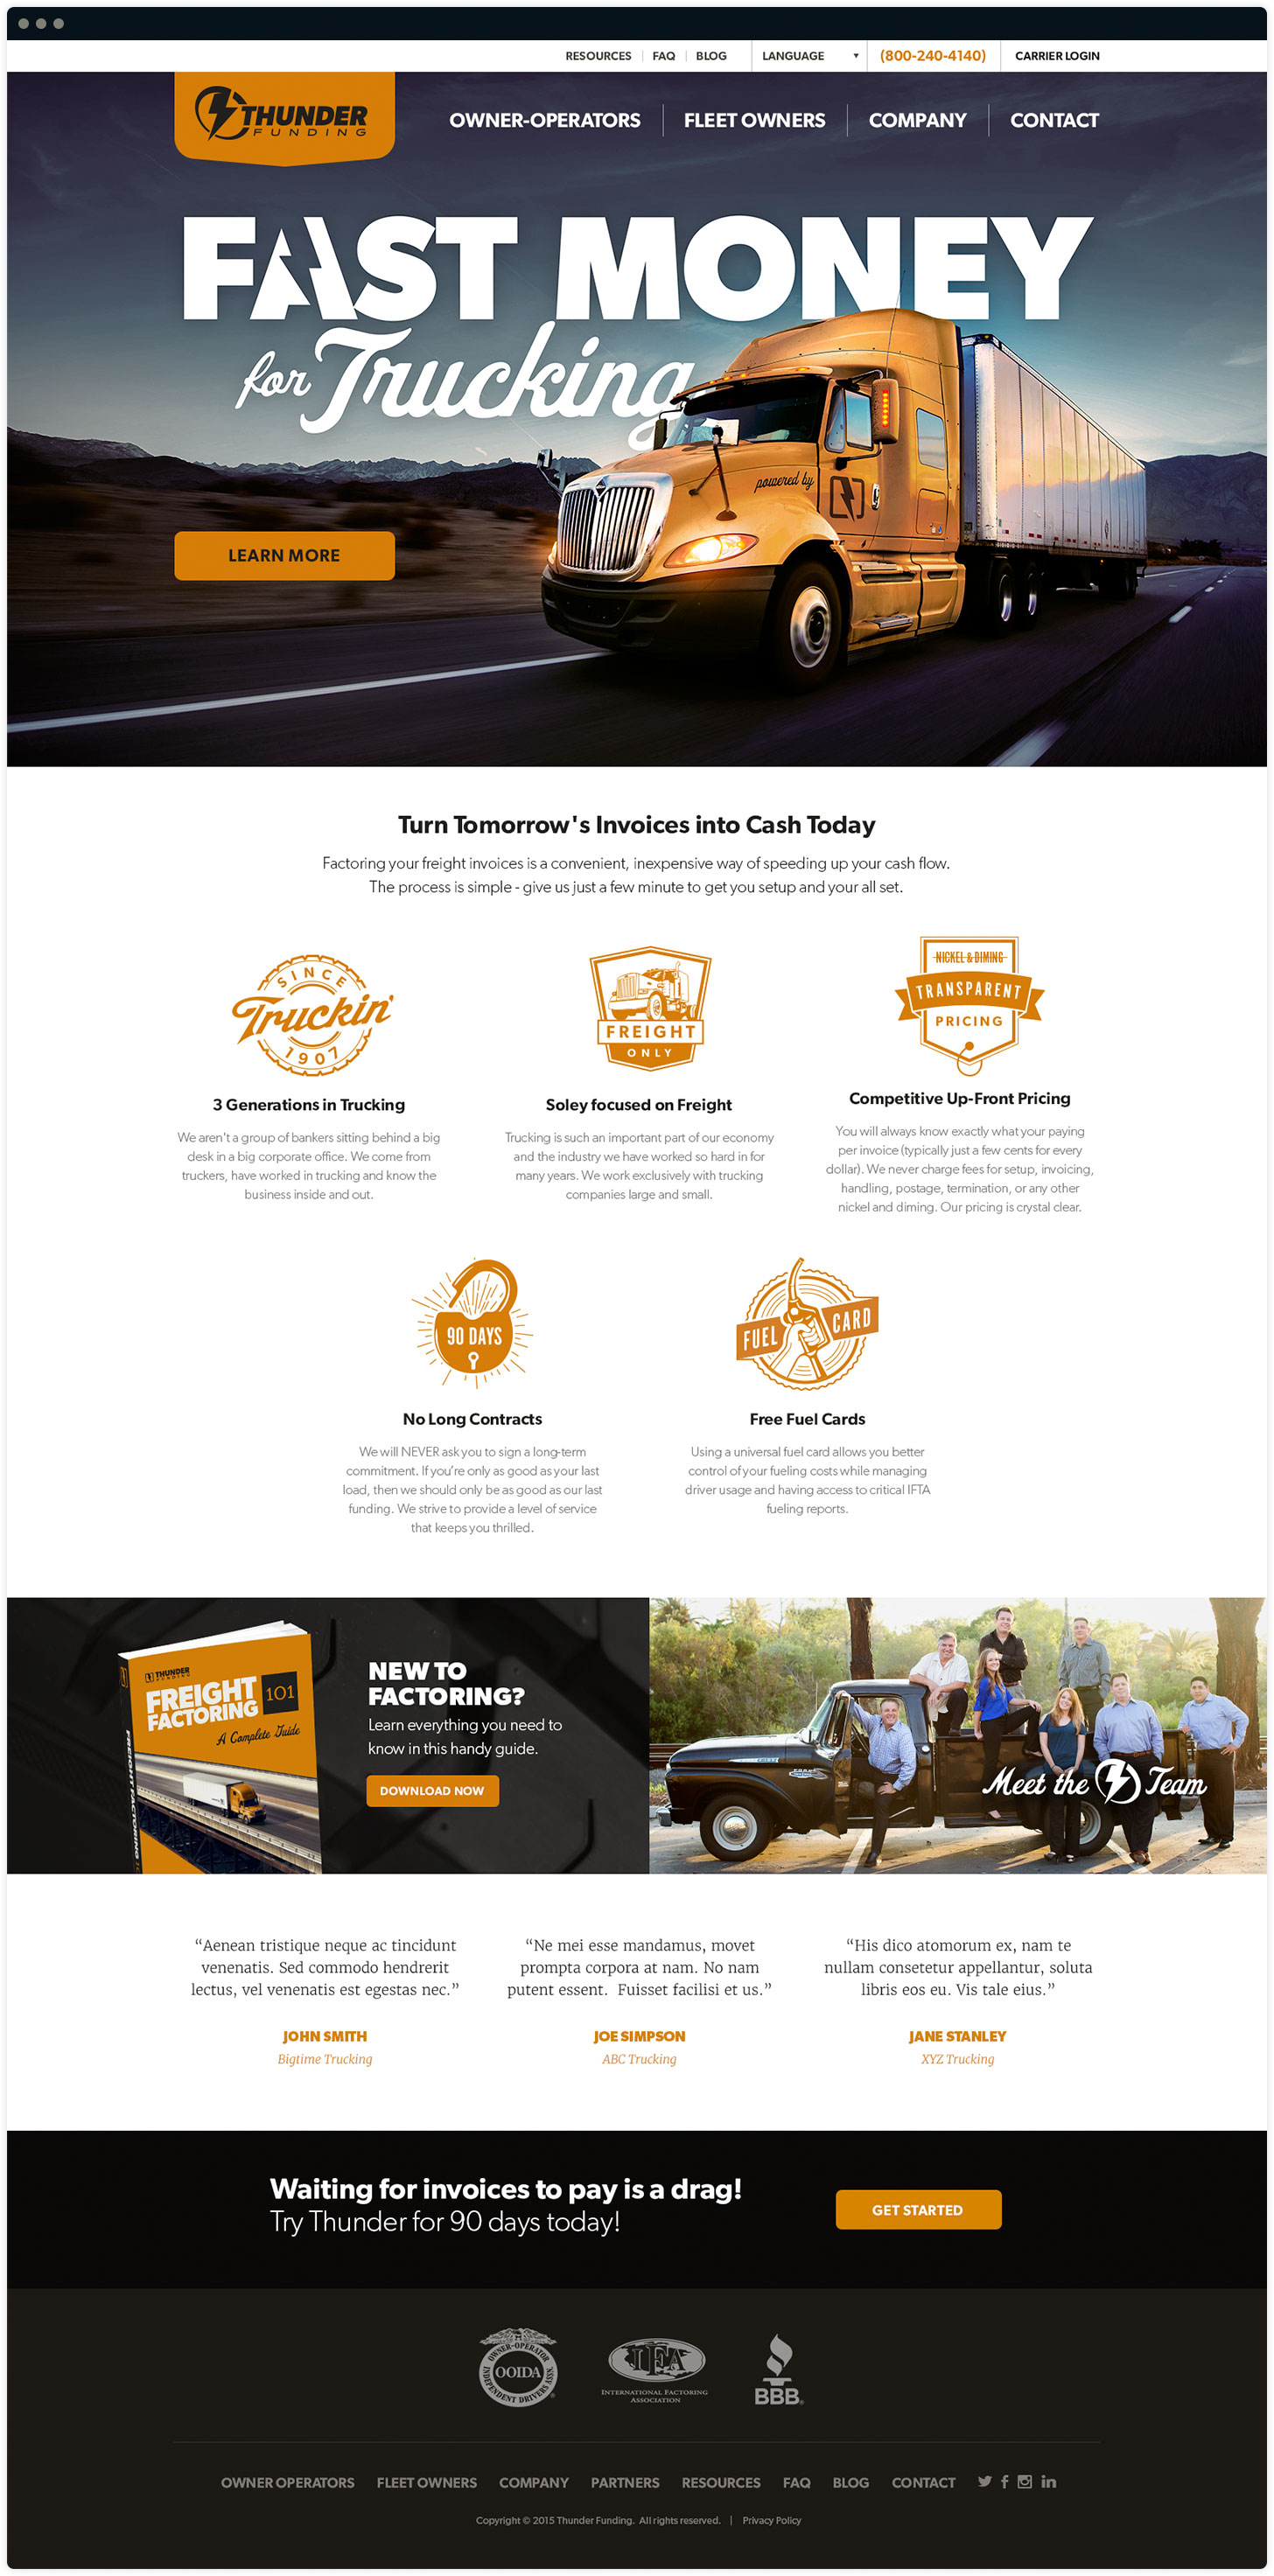 Thunder Funding Website Design by Salted Stone